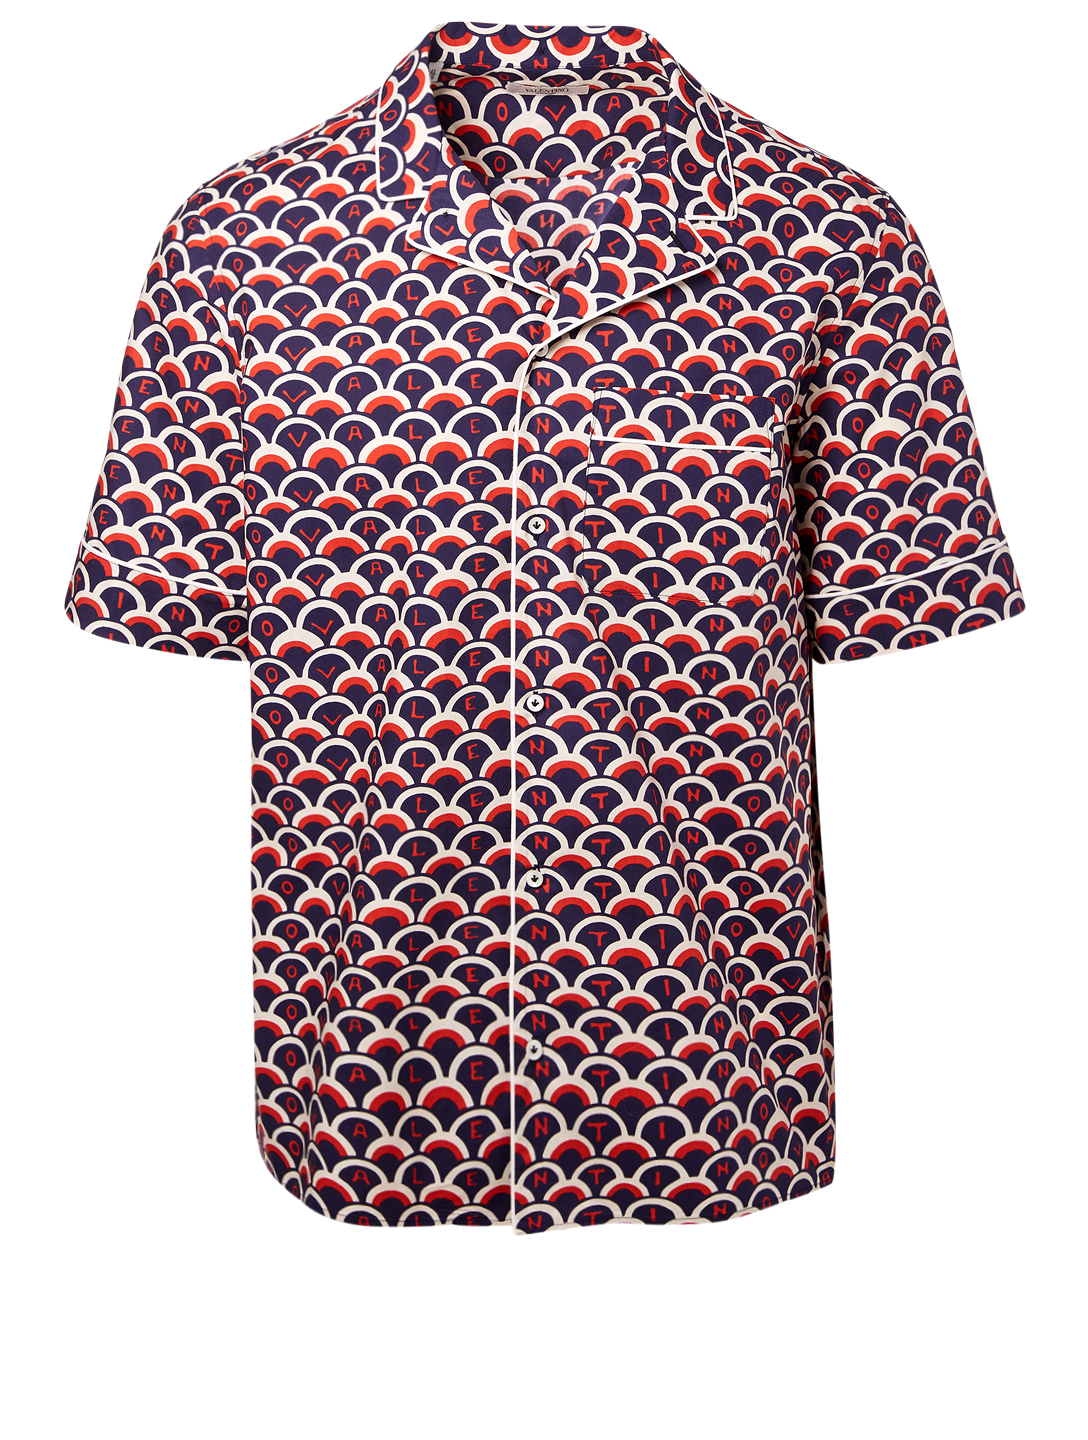 VALENTINO Short Sleeve Shirt In Logo Scale Print Men's Blue